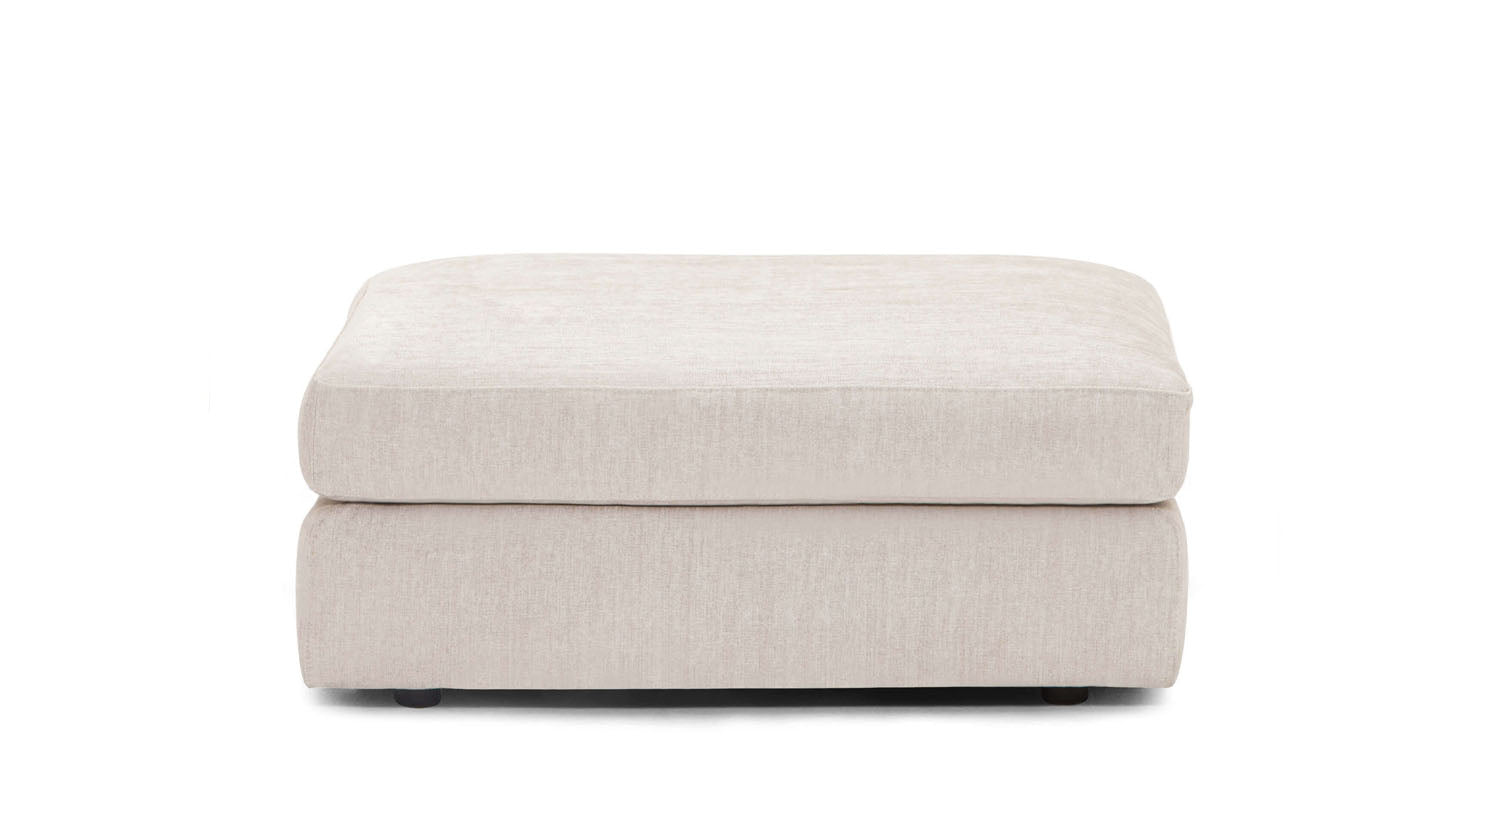 cello modular ottoman - fabric